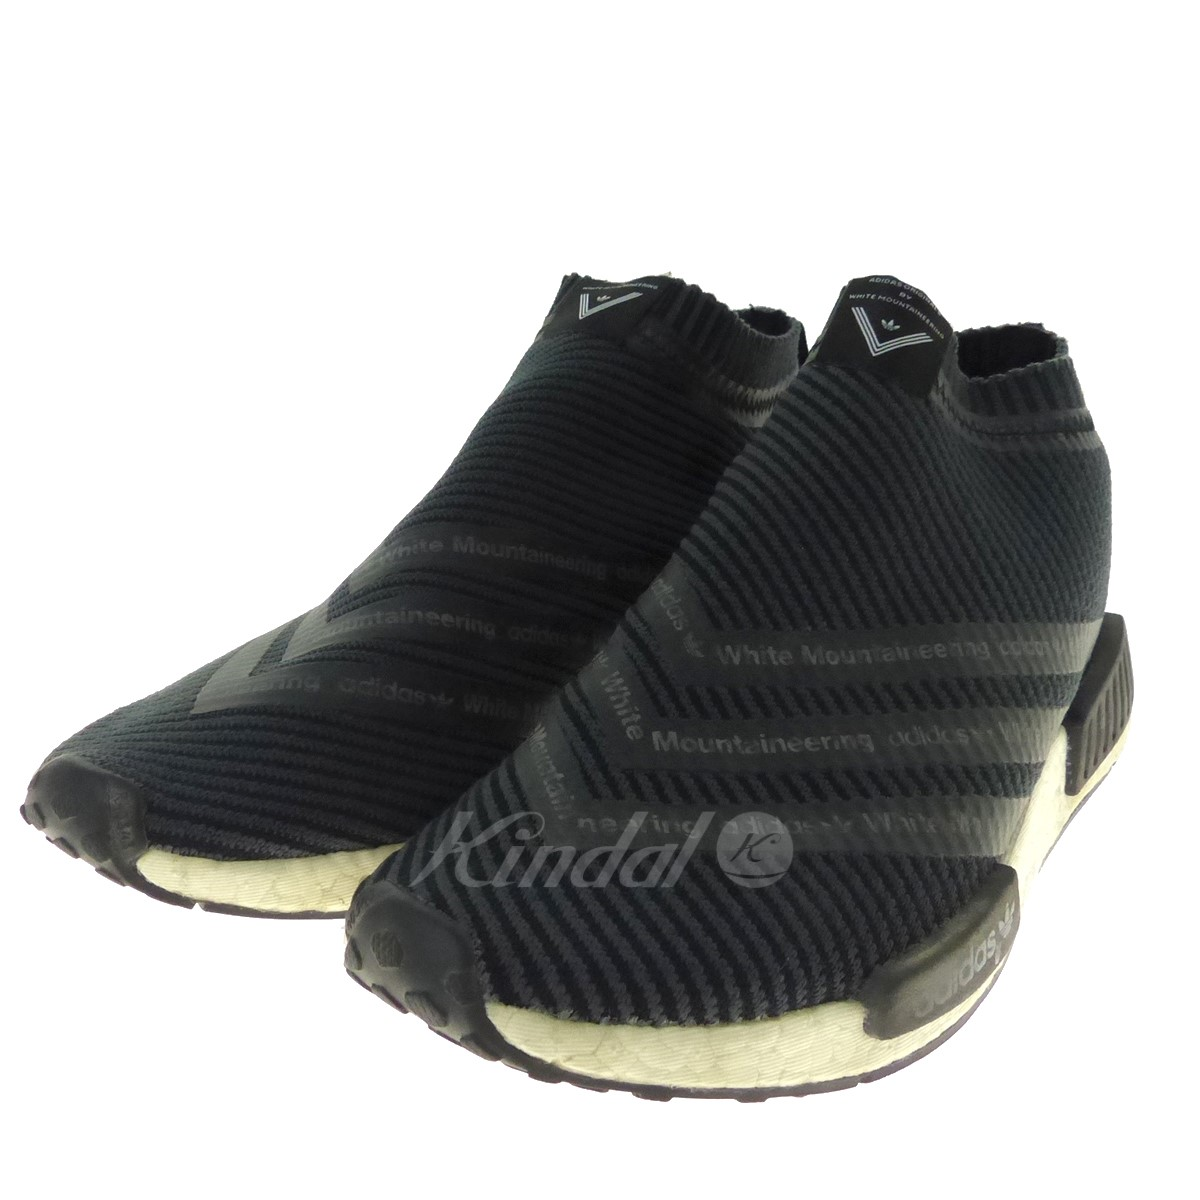 quality design c5bb1 465d2 adidas Originals by WHITE MOUNTAINEERING